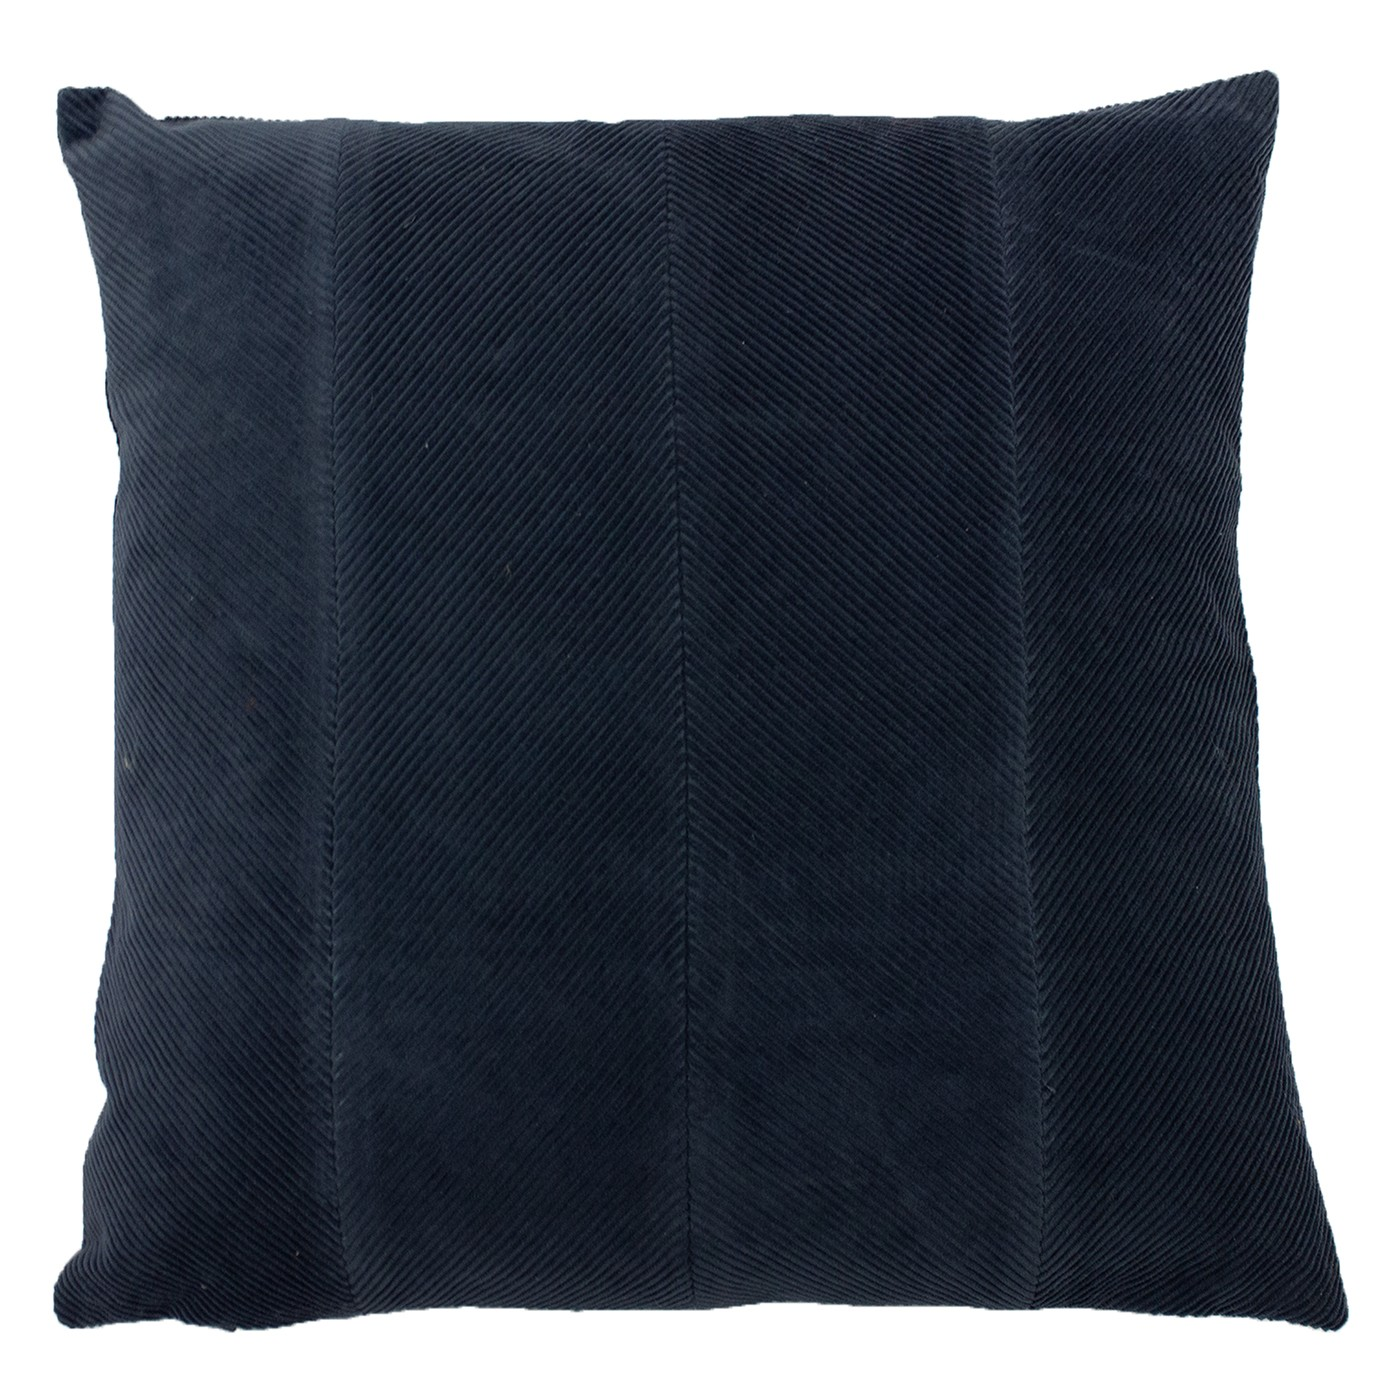 The Home Furnishings Company Jagger Navy Corduroy Cushion 45x45cms